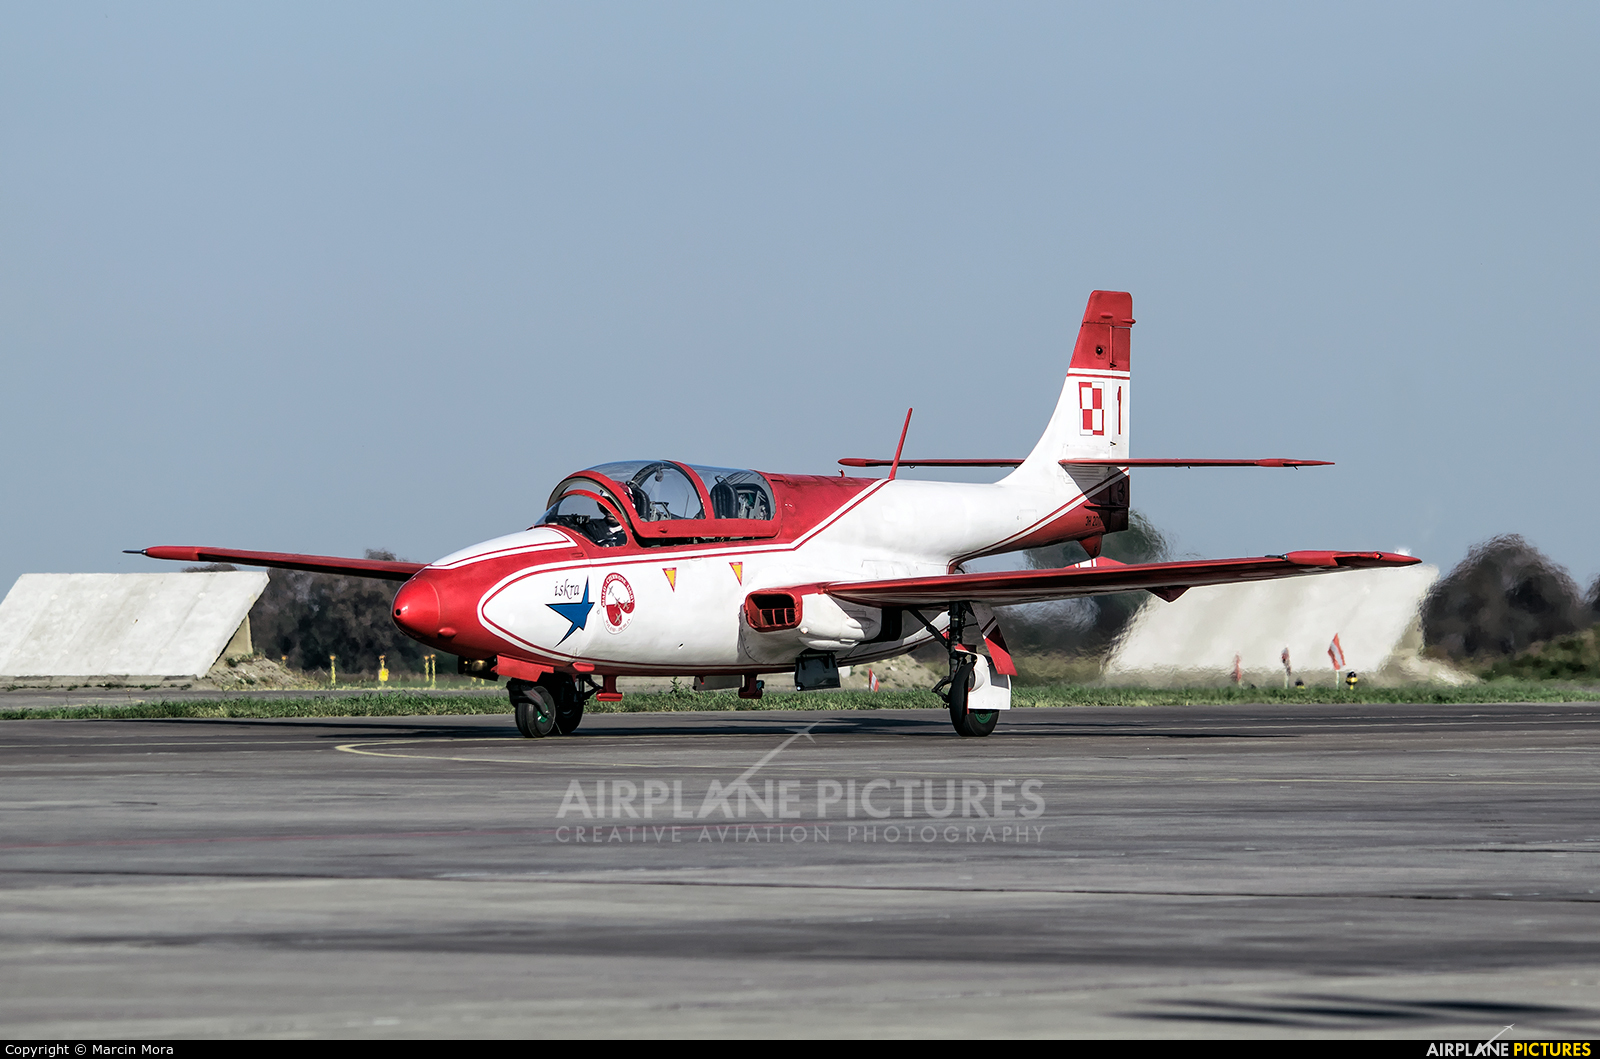 Poland - Air Force: White & Red Iskras 1 aircraft at Poznań - Krzesiny